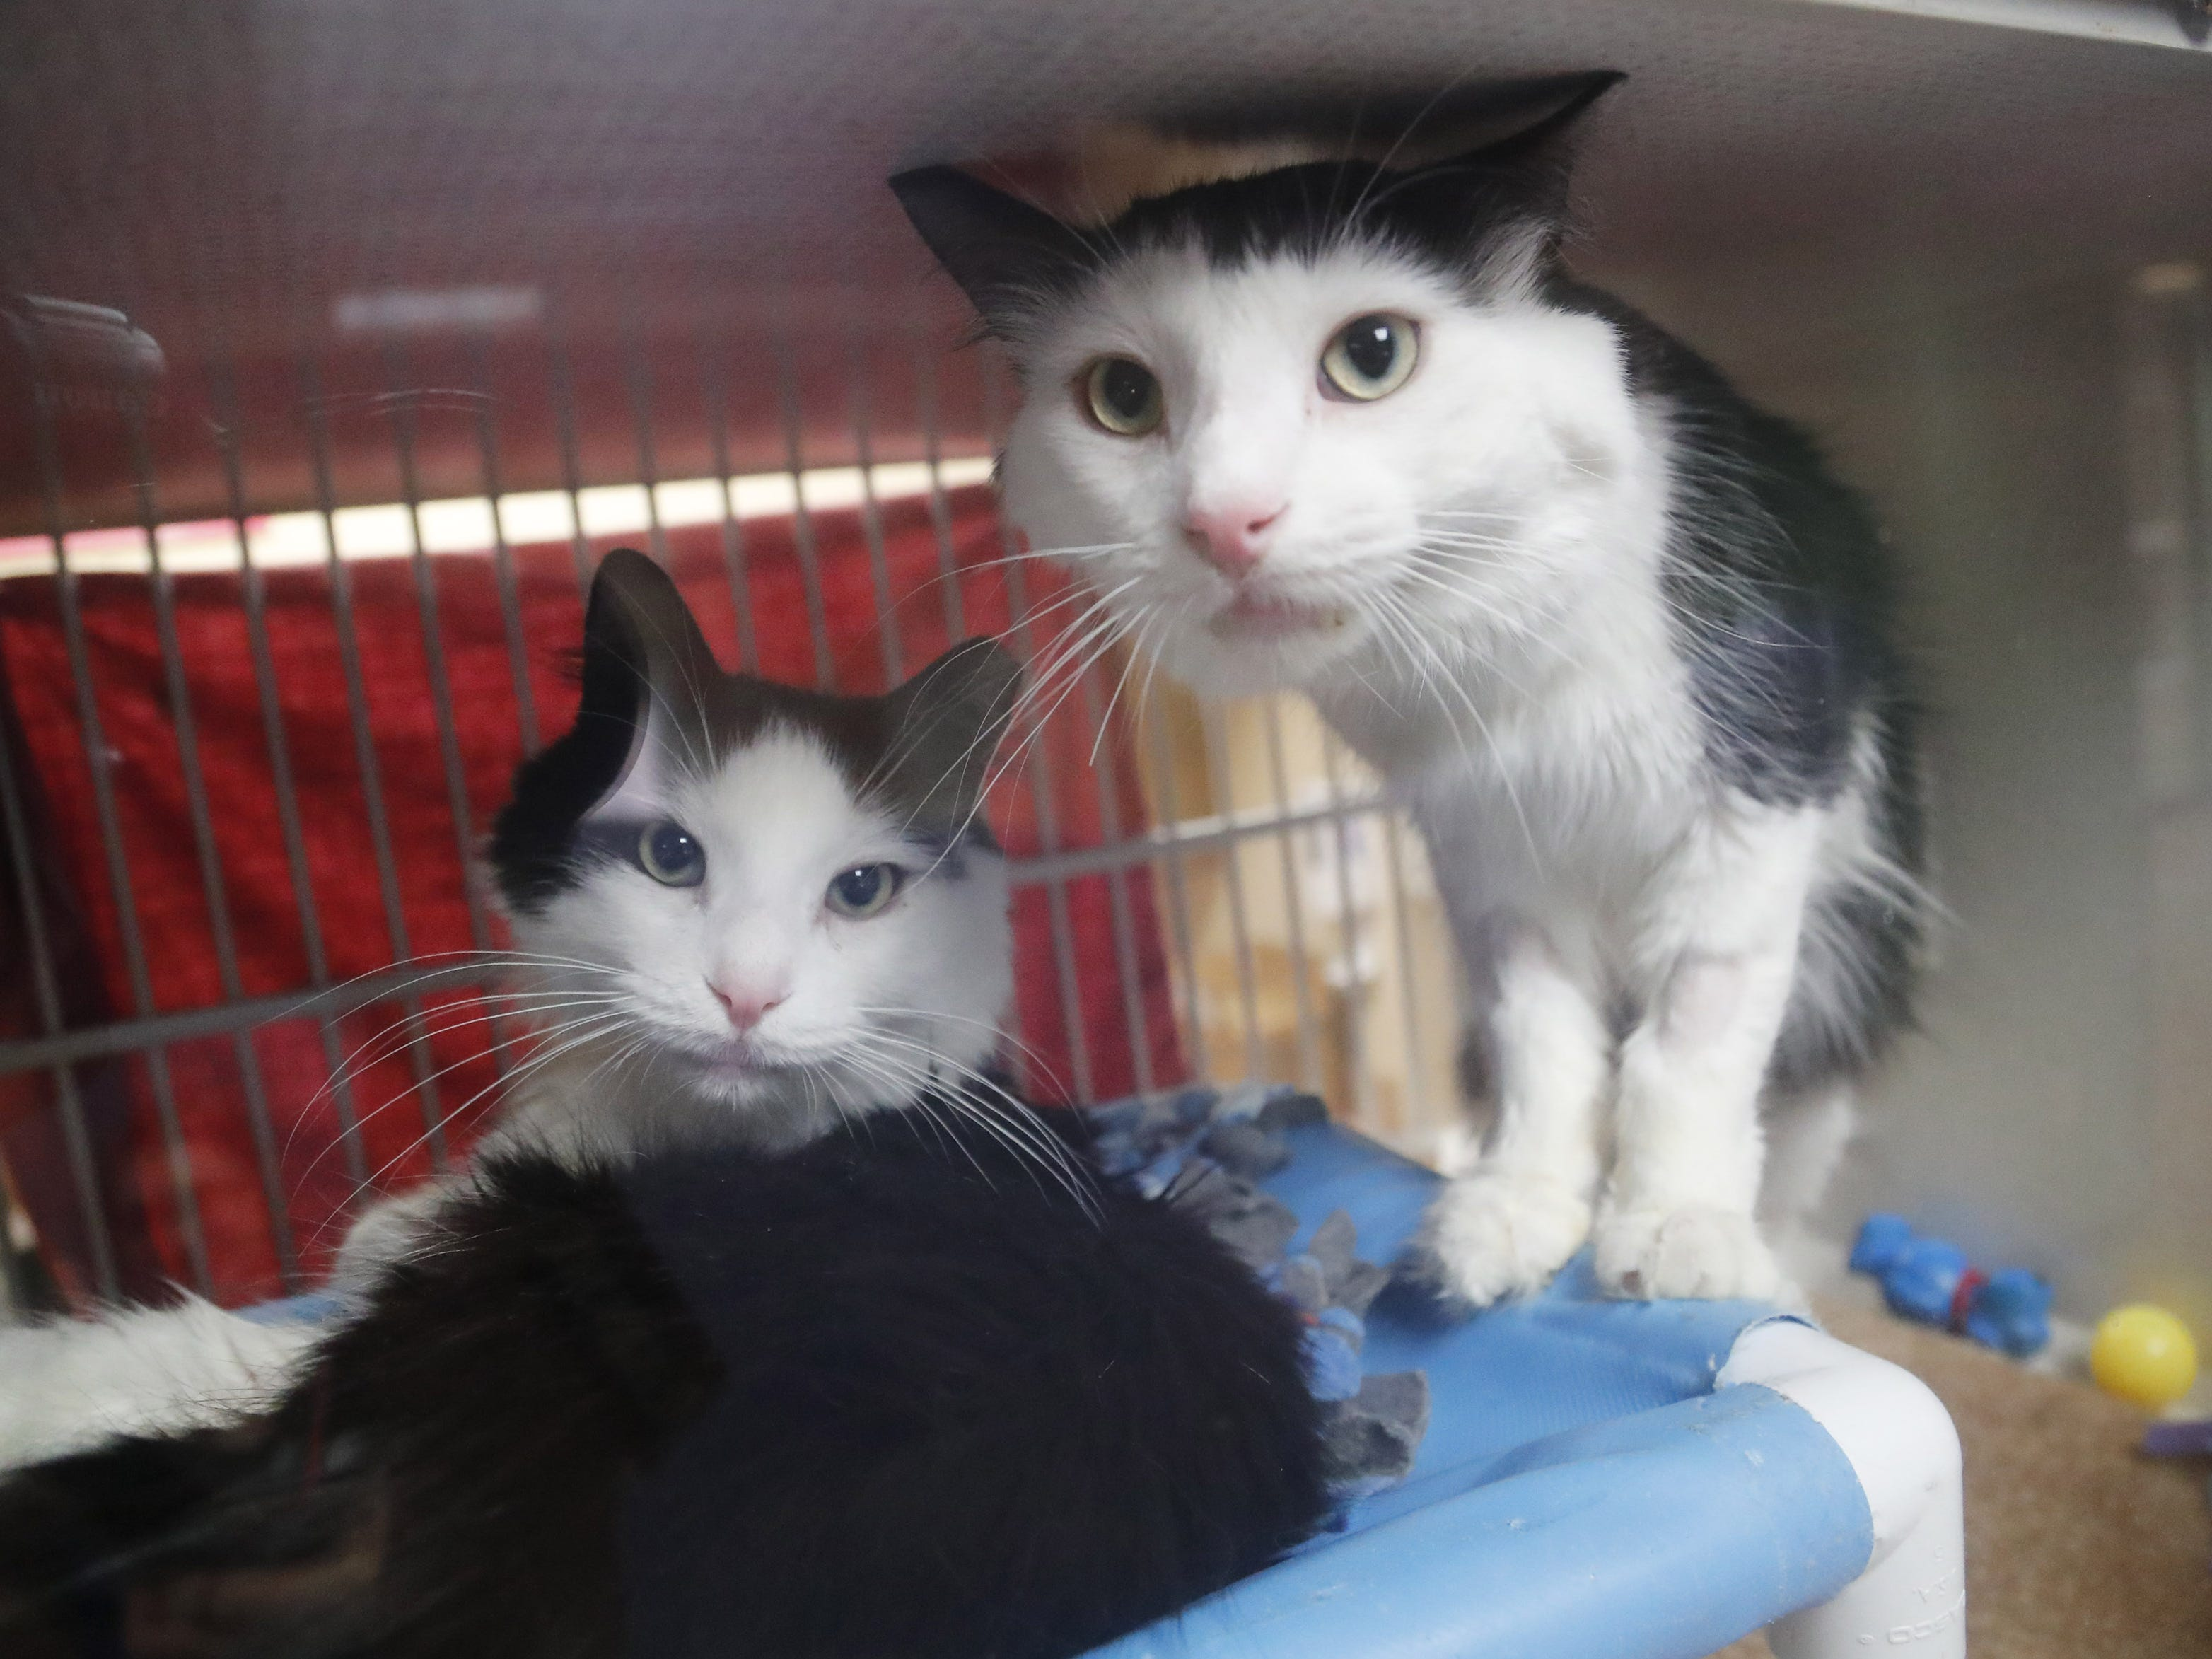 Silvester (left) and Spunky wait to be adopted at the Arizona Humane Society in Phoenix on April 1, 2019. More than 8,000 dogs and cats have been surrendered in Maricopa County since the start of the year.